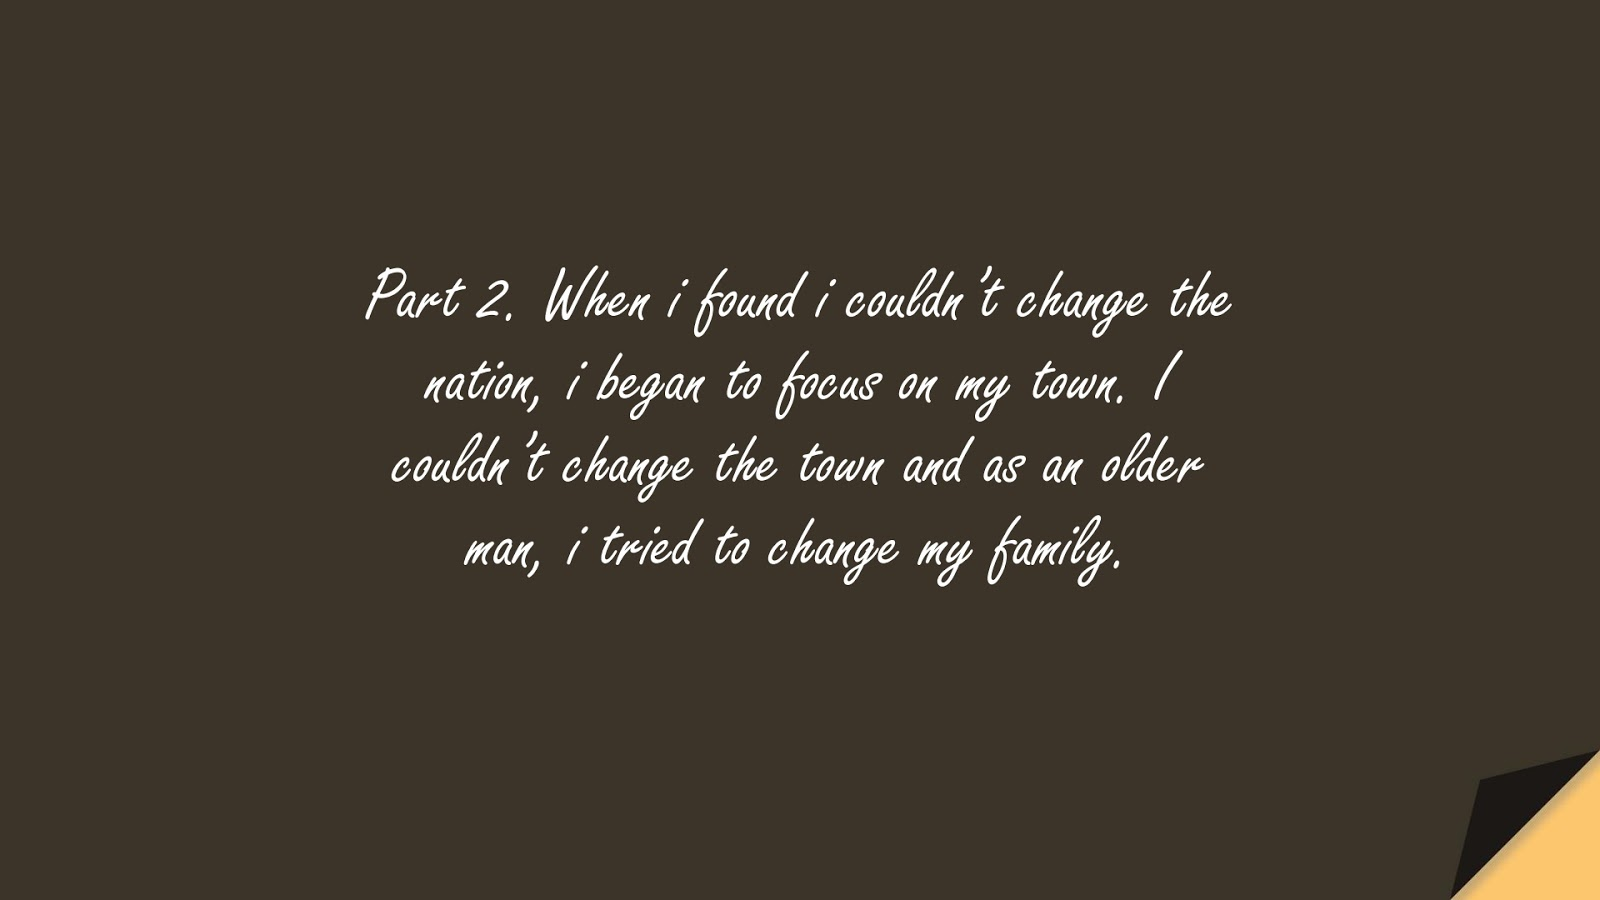 Part 2. When i found i couldn't change the nation, i began to focus on my town. I couldn't change the town and as an older man, i tried to change my family.FALSE